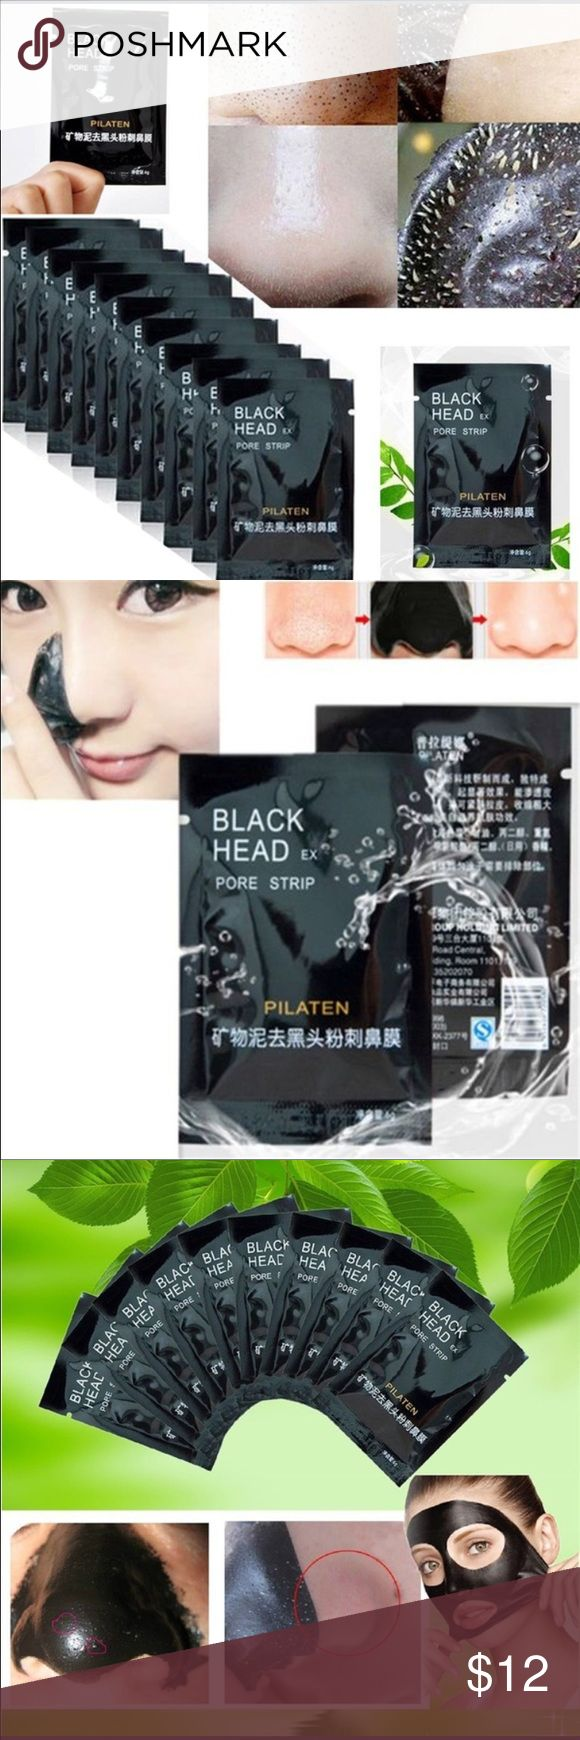 coming soon Blackhead mask 100% Brand new high quality Facial Cleansing mask is a beauty mask for facial care. Cleaning out of dirt and cuticles effectively on face. This great blackhead remover helps to remove stain or oil spots on your face with daily use. Improving the blood circulation of your face by this mask. Helps to keep your face smoother and tender. Makeup